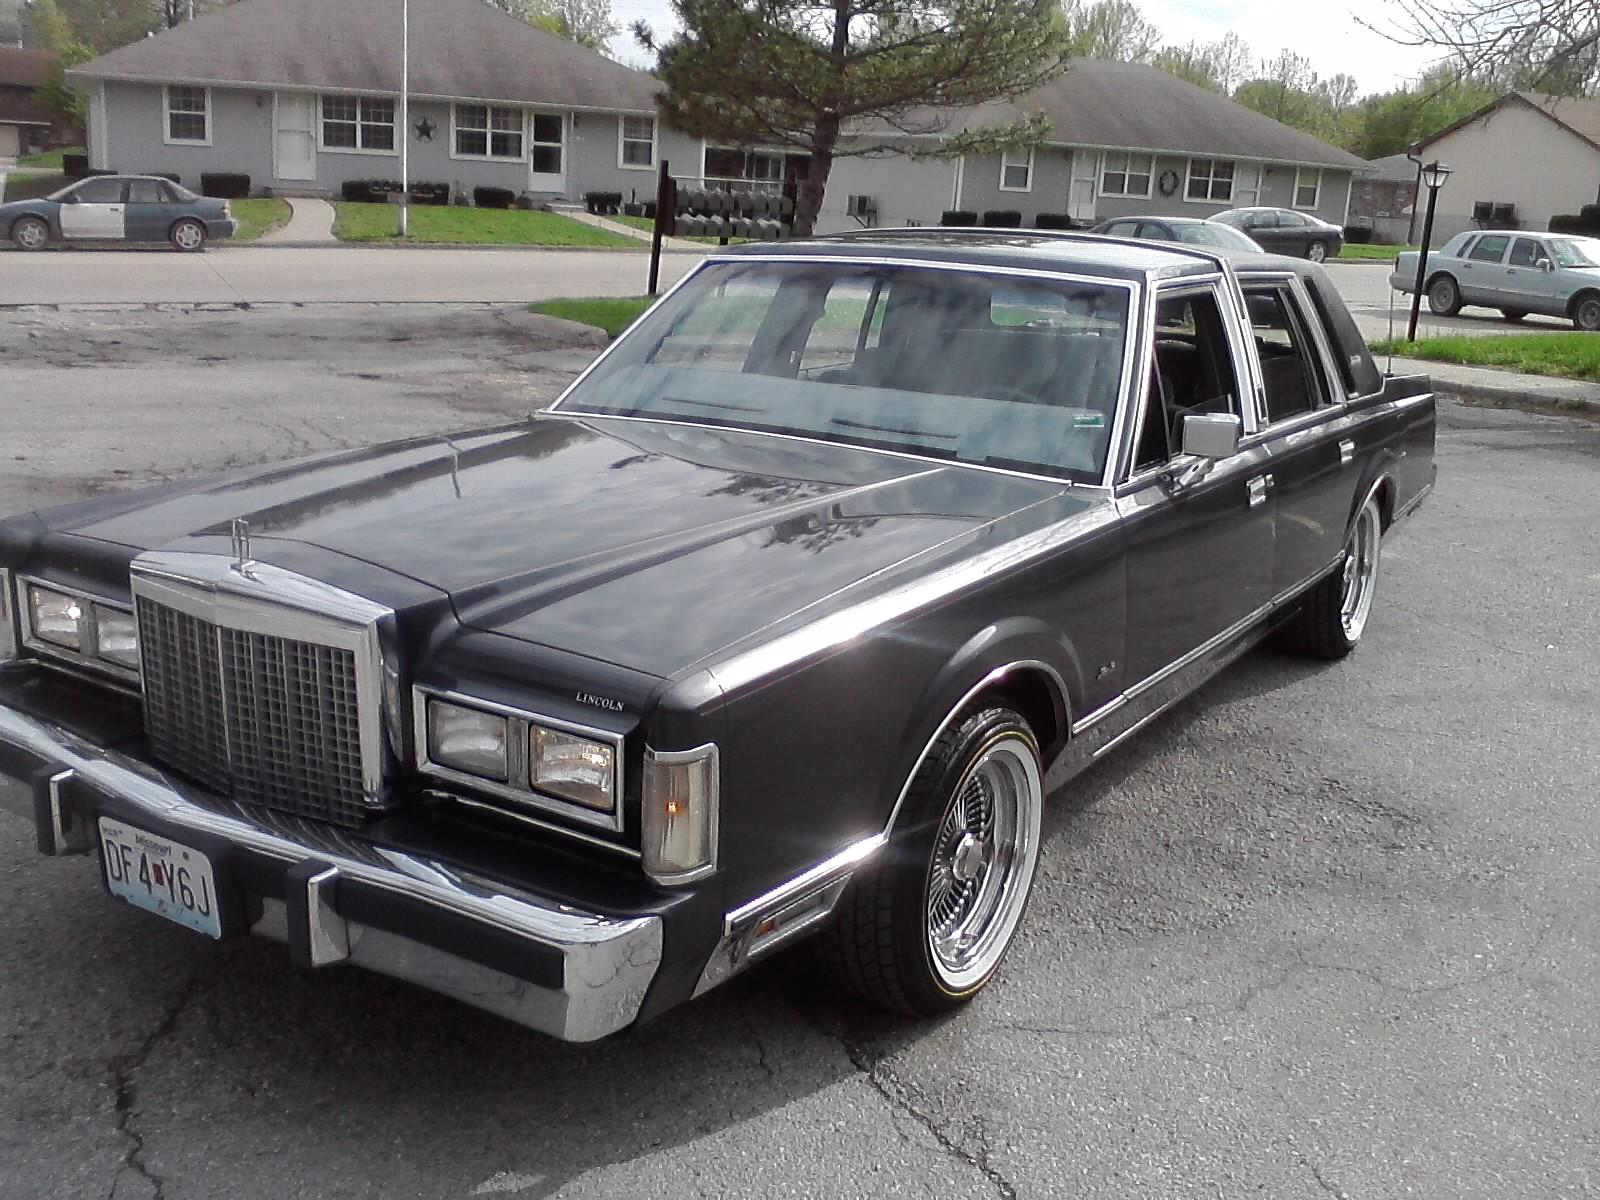 1979 Gmc Truck Wiring Diagram moreover 5844285552 likewise 1958 Lincoln Continental Mark Iii together with 1979 Lincoln Mark V Collectors Series White likewise 8300 Lincoln Town Car 1985 9. on 1979 lincoln town car